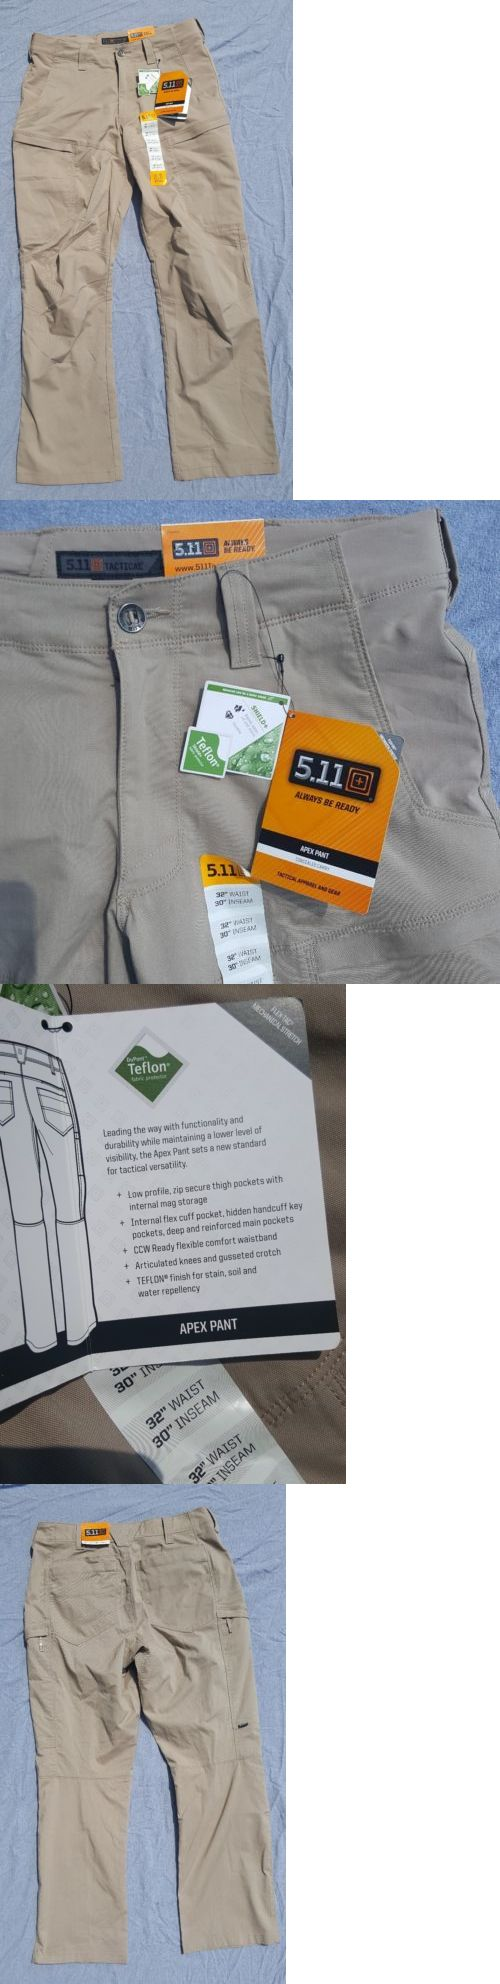 Tactical Clothing 177896: 511 Tactical 74434 Apex Pant Khaki 32 X 30 New With Tags. -> BUY IT NOW ONLY: $59.99 on eBay!